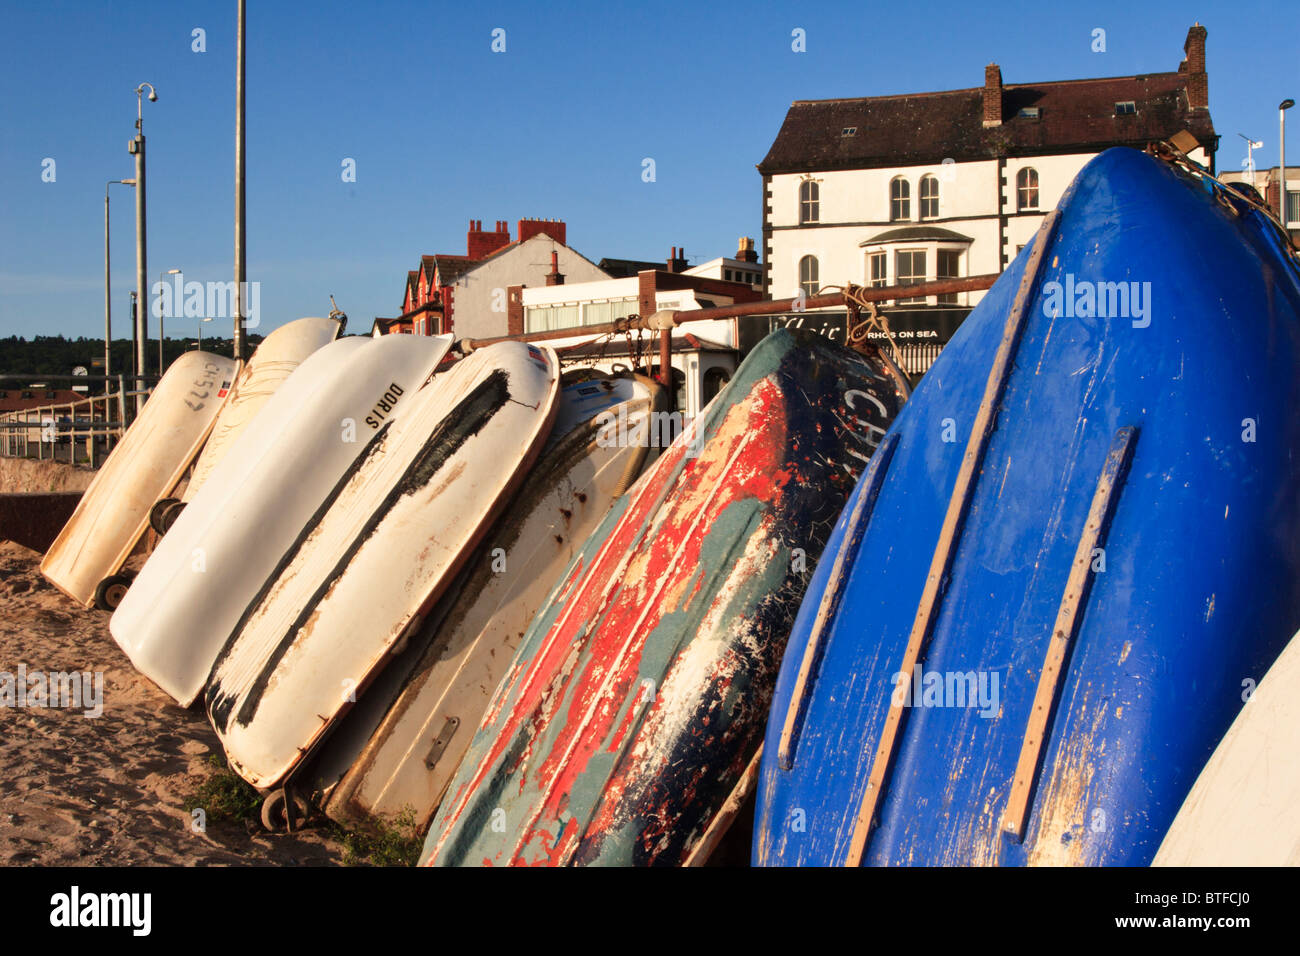 rowing boats tied up on beach at rhos on sea near colwyn bay in Conwy. - Stock Image